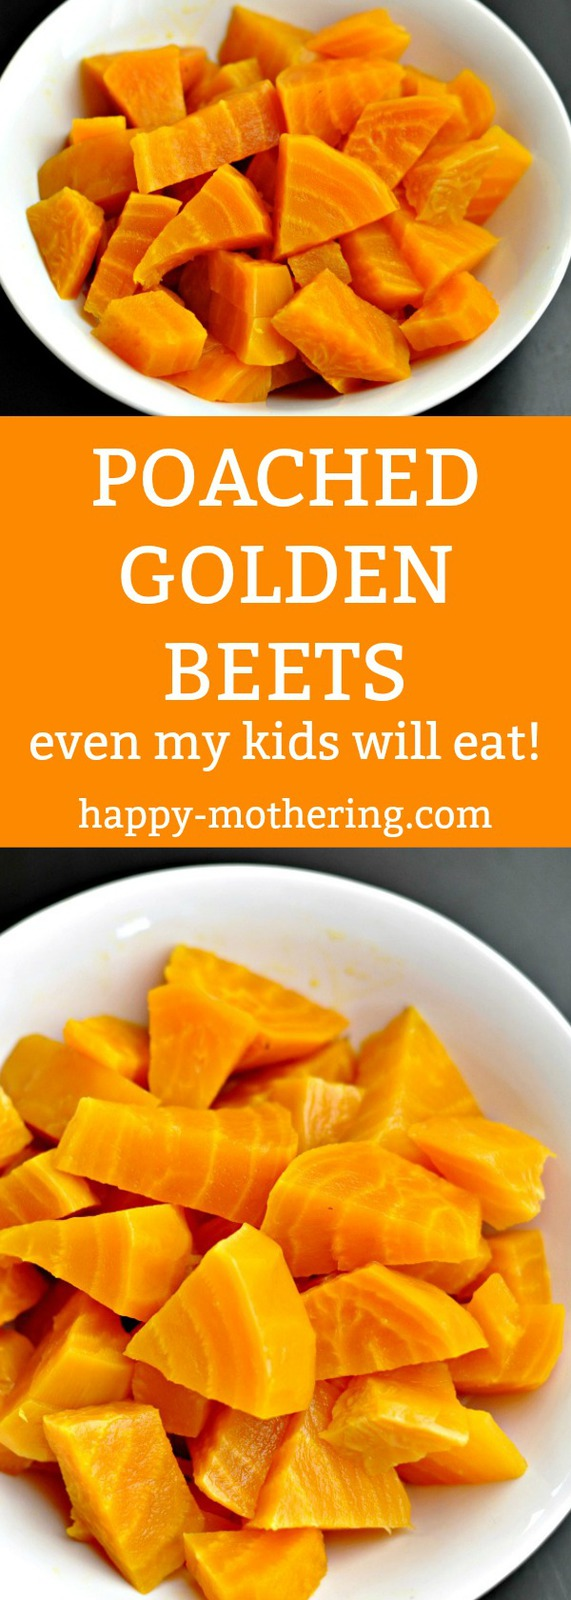 Are you looking for a way to cook beets your whole family will love? These Poached Golden Beets are tender and full of flavor. Even my kids will eat them!